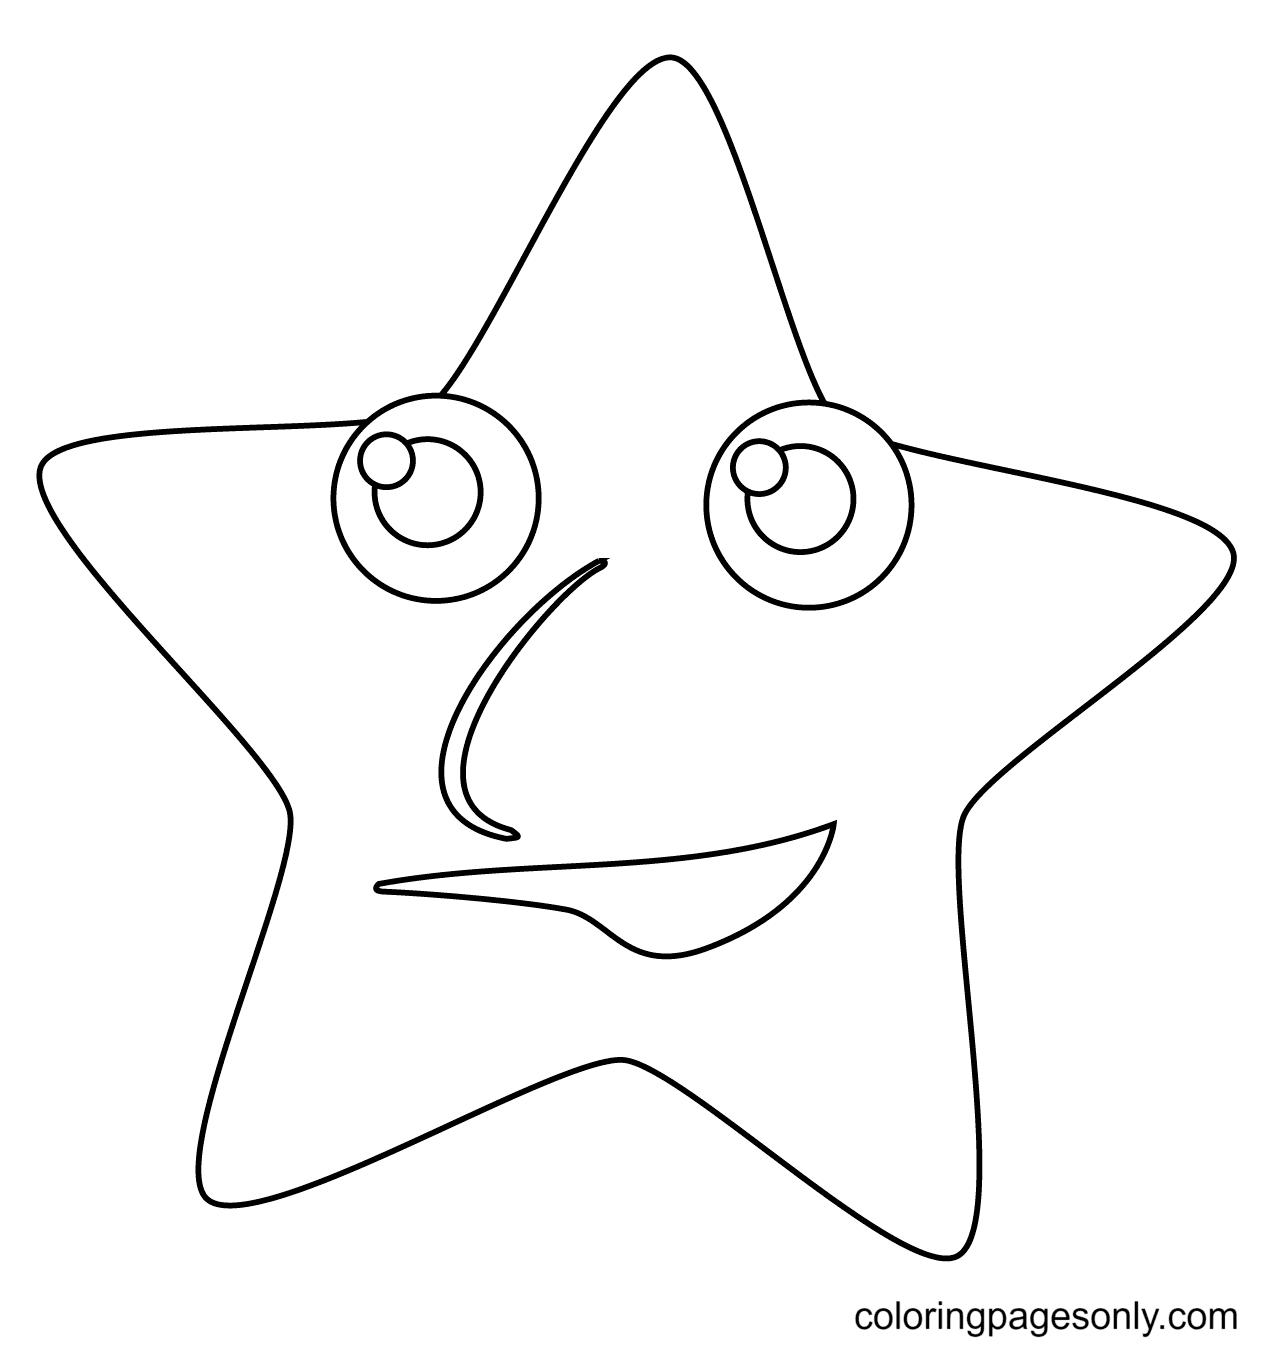 Star with Face Coloring Page